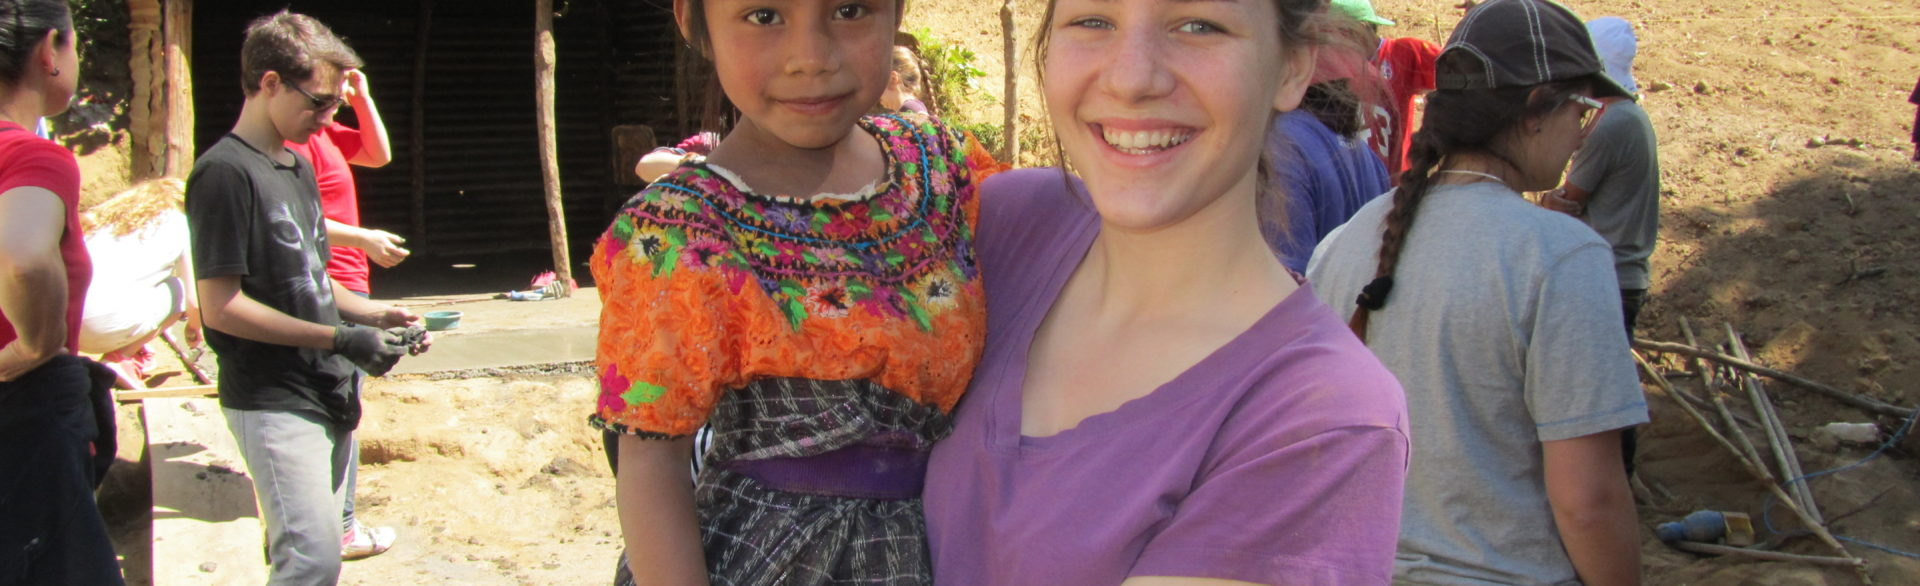 Register to the Discovery Program in Guatemala this Winter!